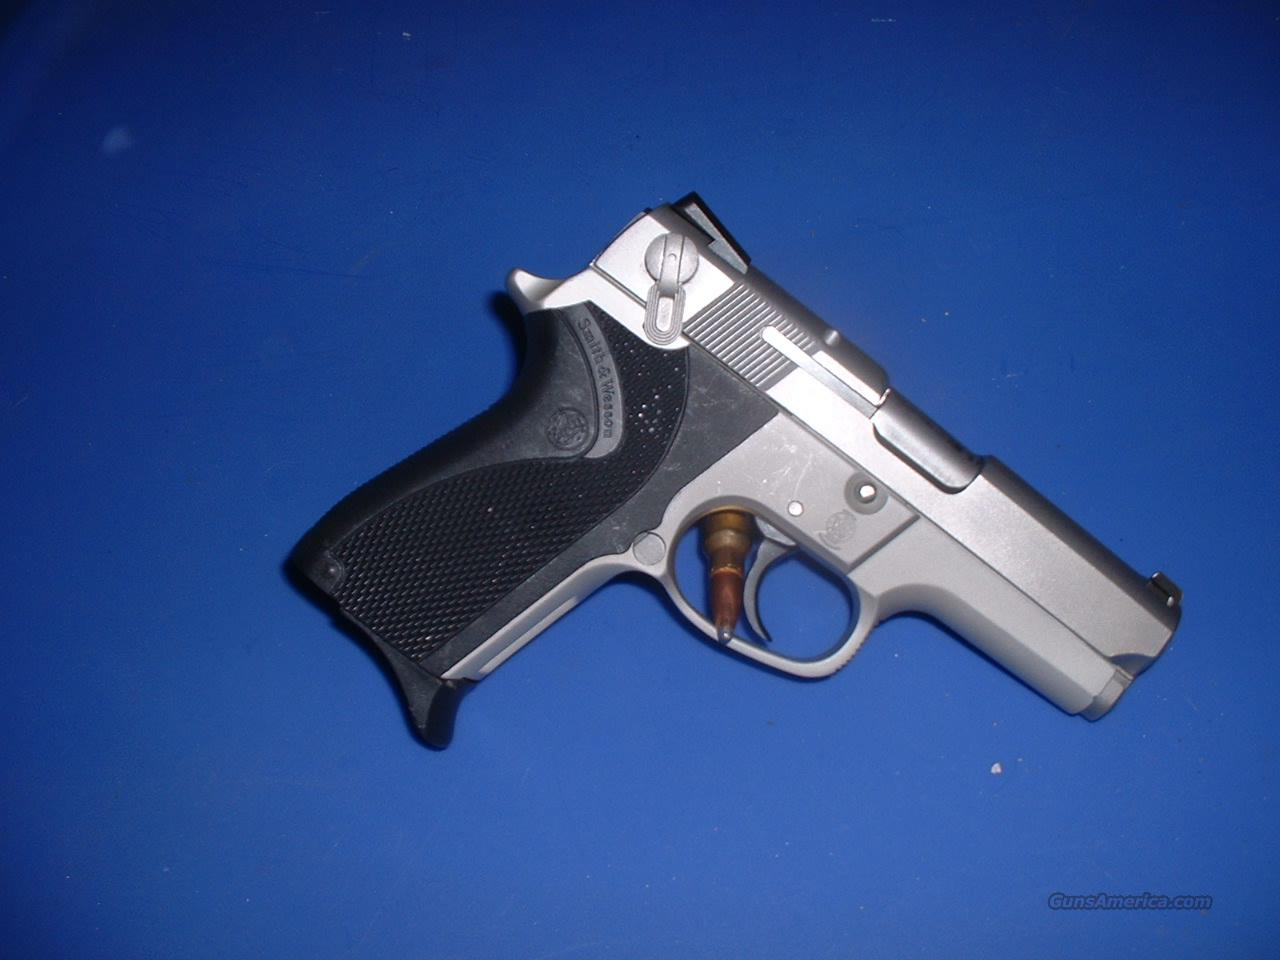 Smith & Wesson 6906  Guns > Pistols > Smith & Wesson Pistols - Autos > Polymer Frame